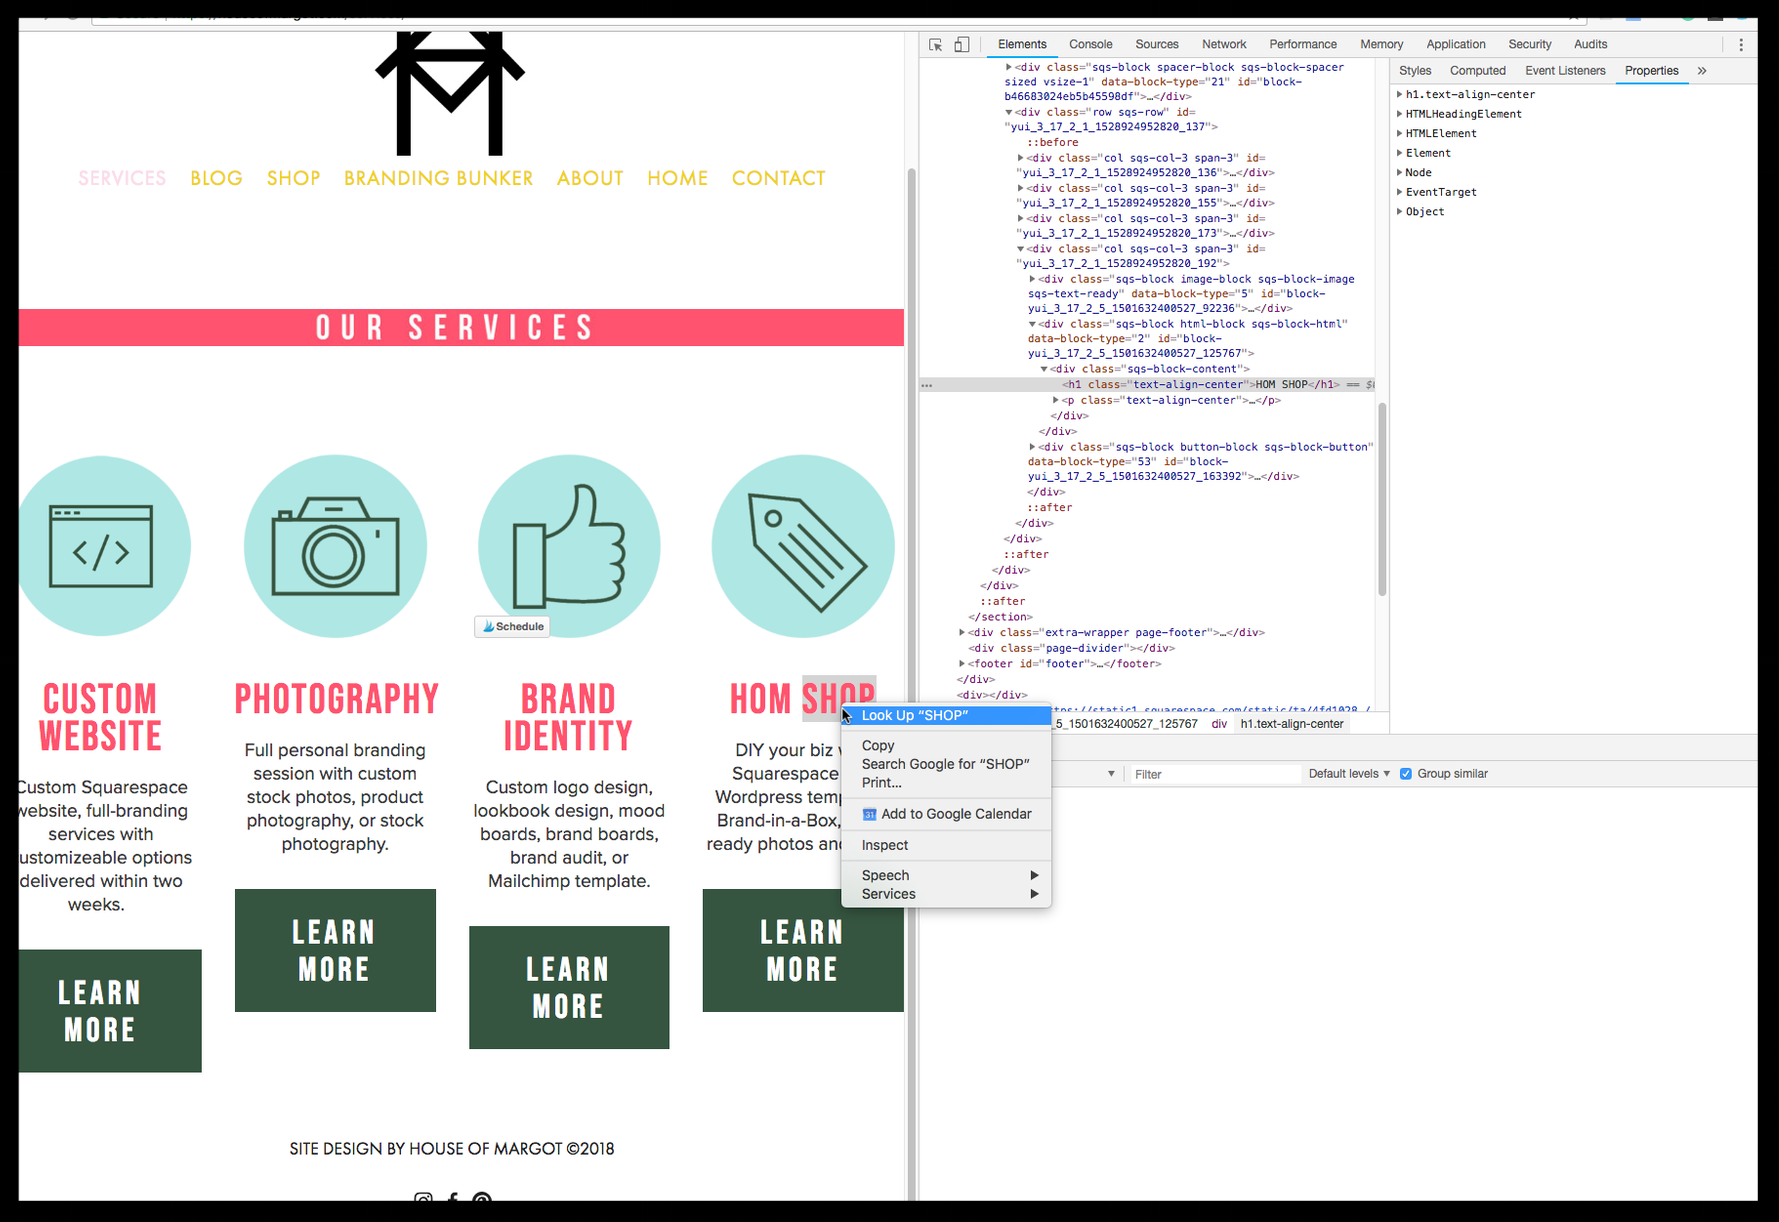 how-to-use-inspect-tool-squarespace